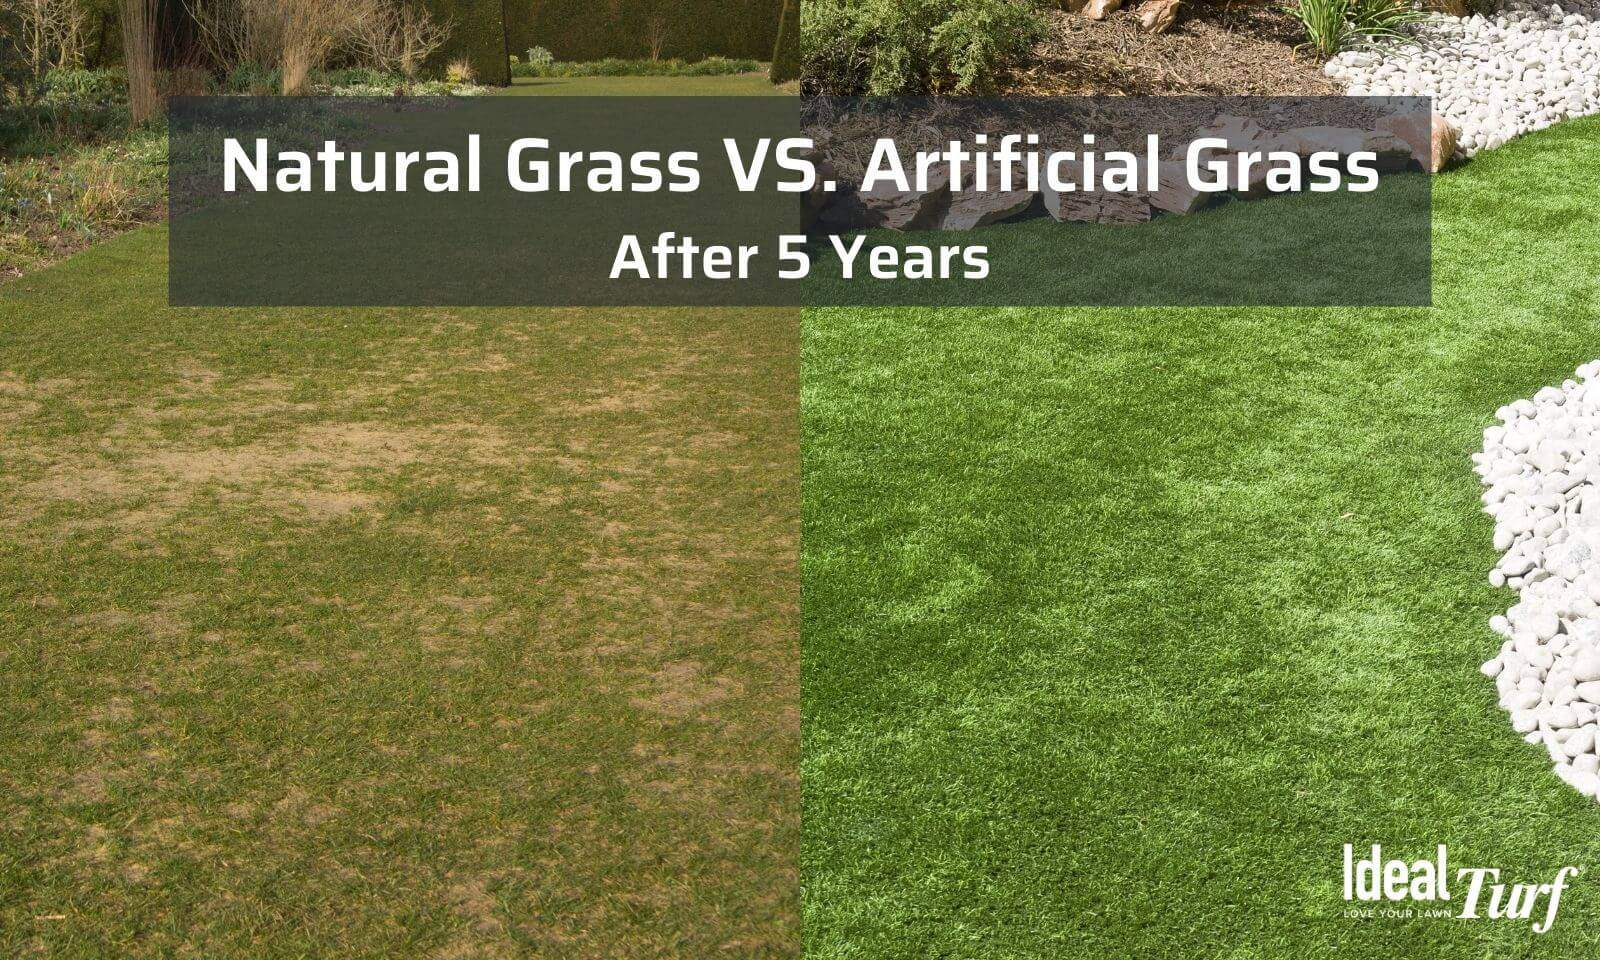 Artificial grass is durable and long-lasting